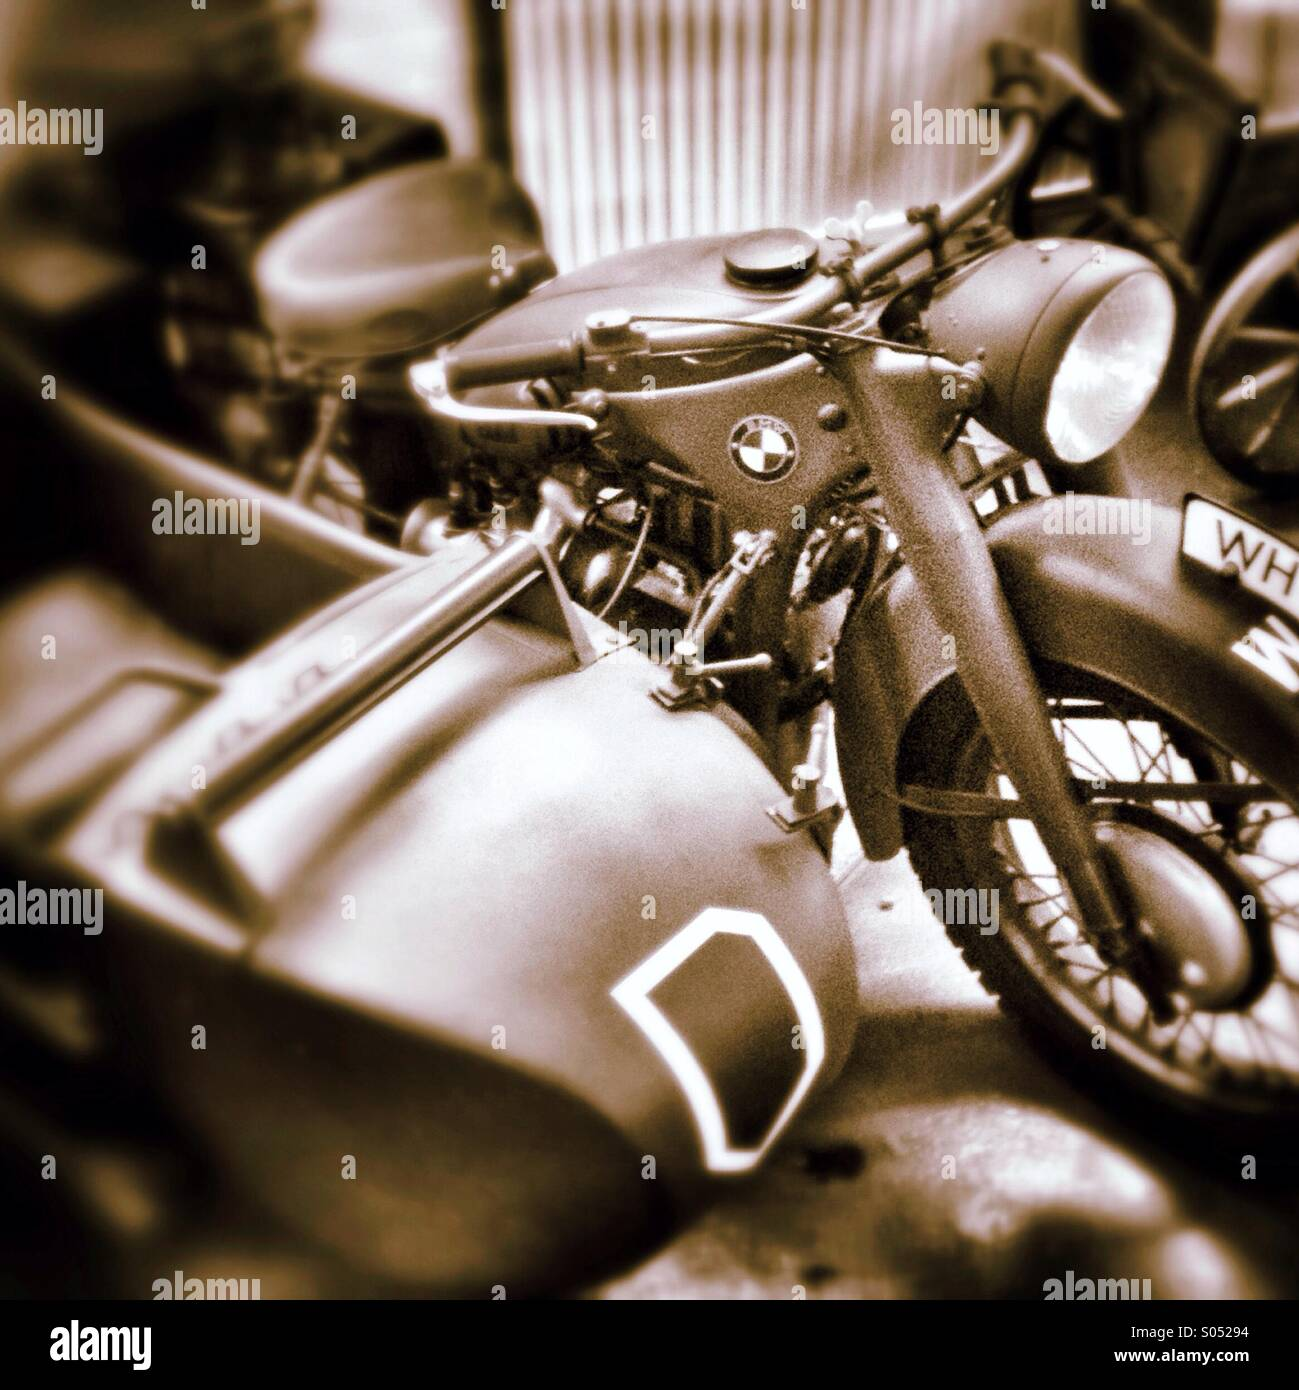 BMW R75 motorcycle - Stock Image